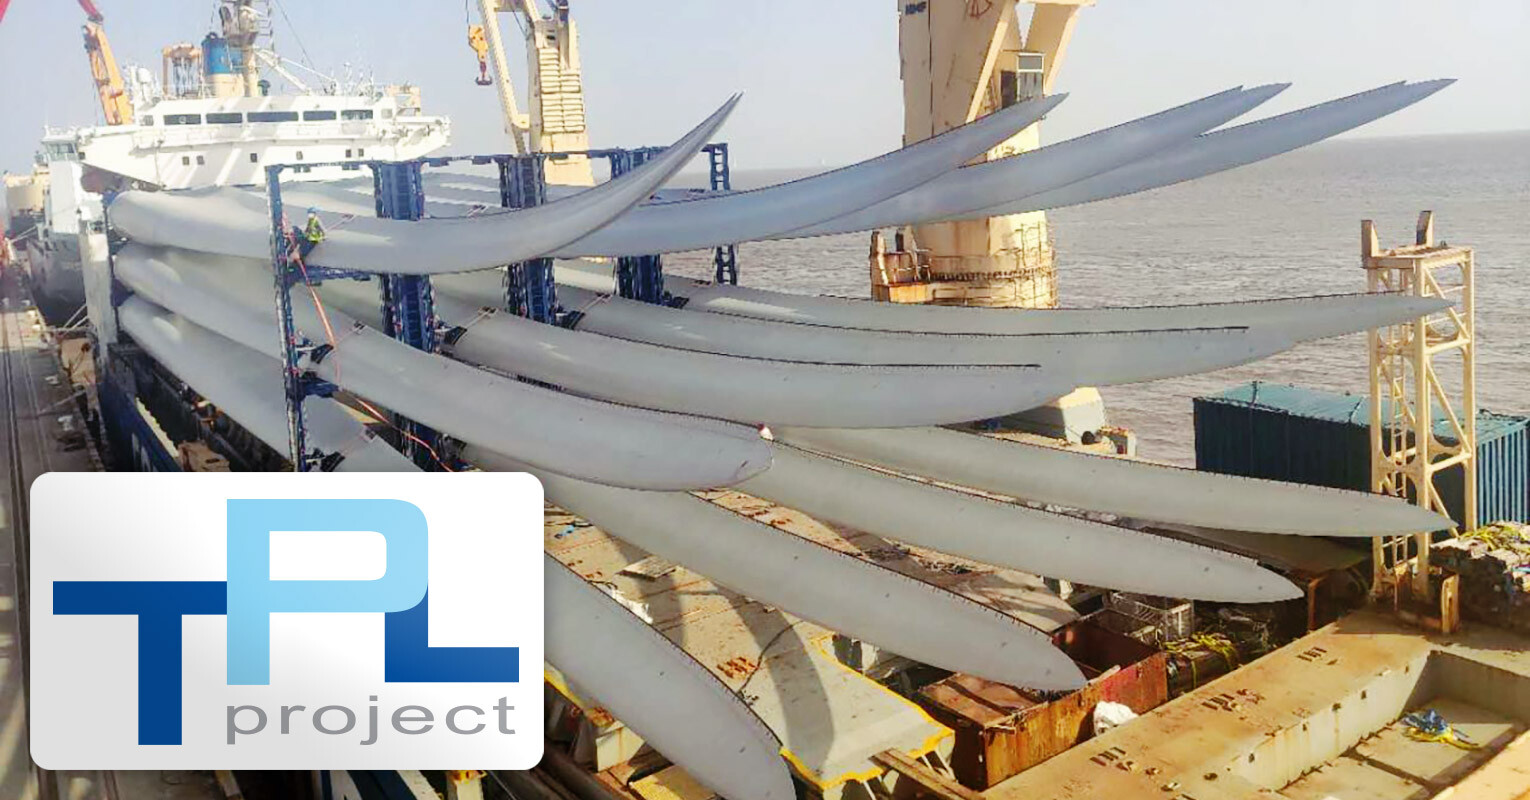 TPL Project Shipped 12 pcs WTG Blades to Thailand